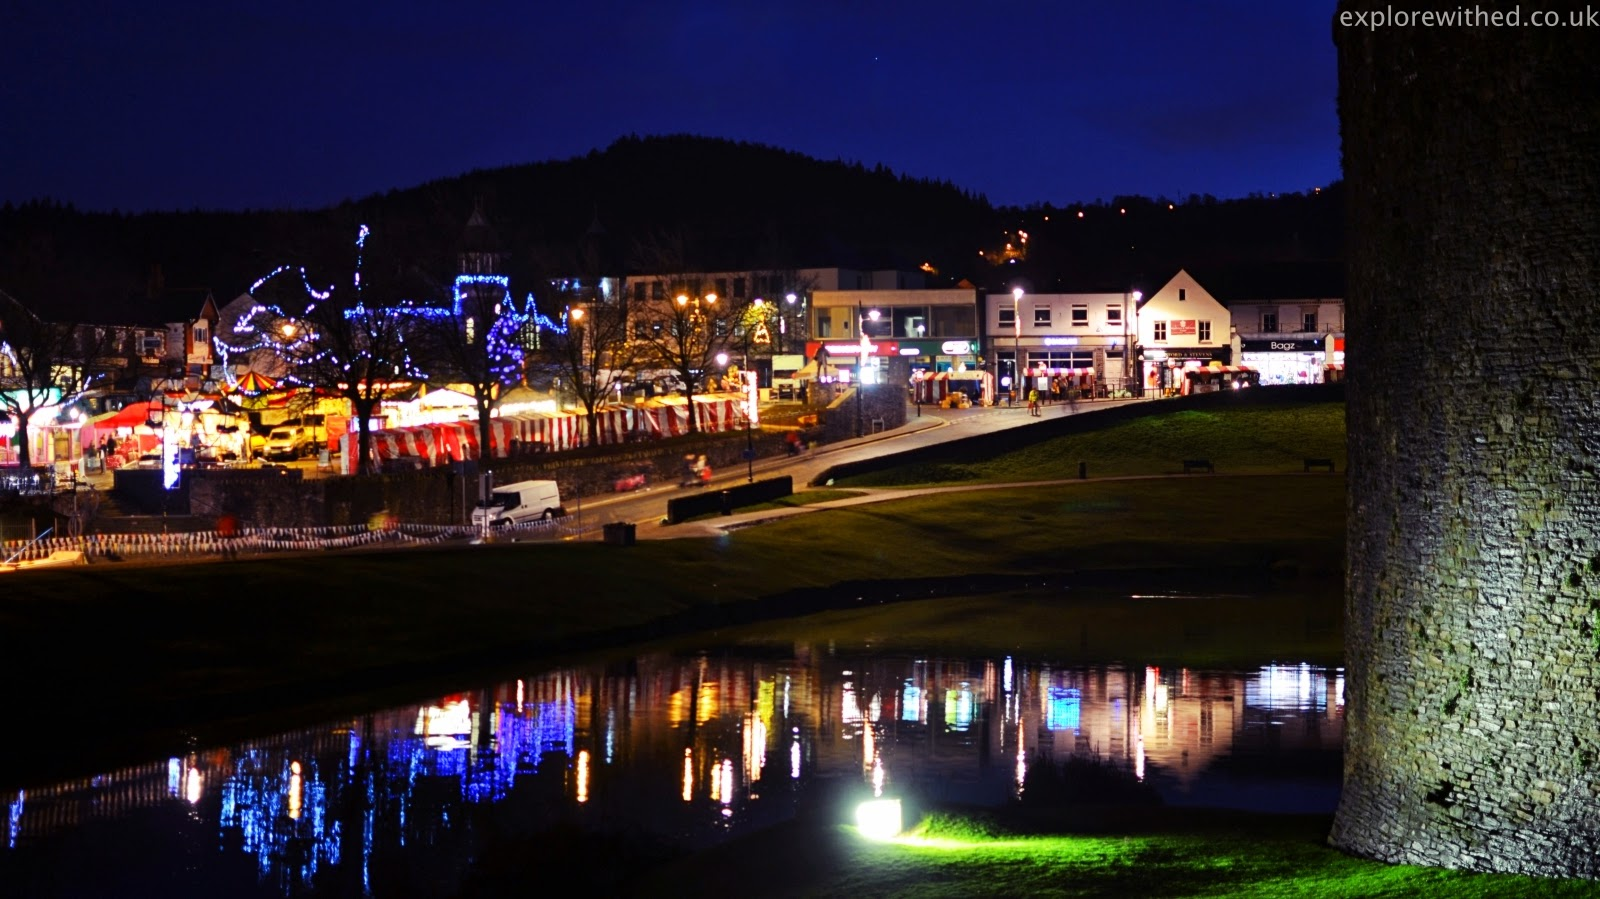 Christmas lights in Caerphilly